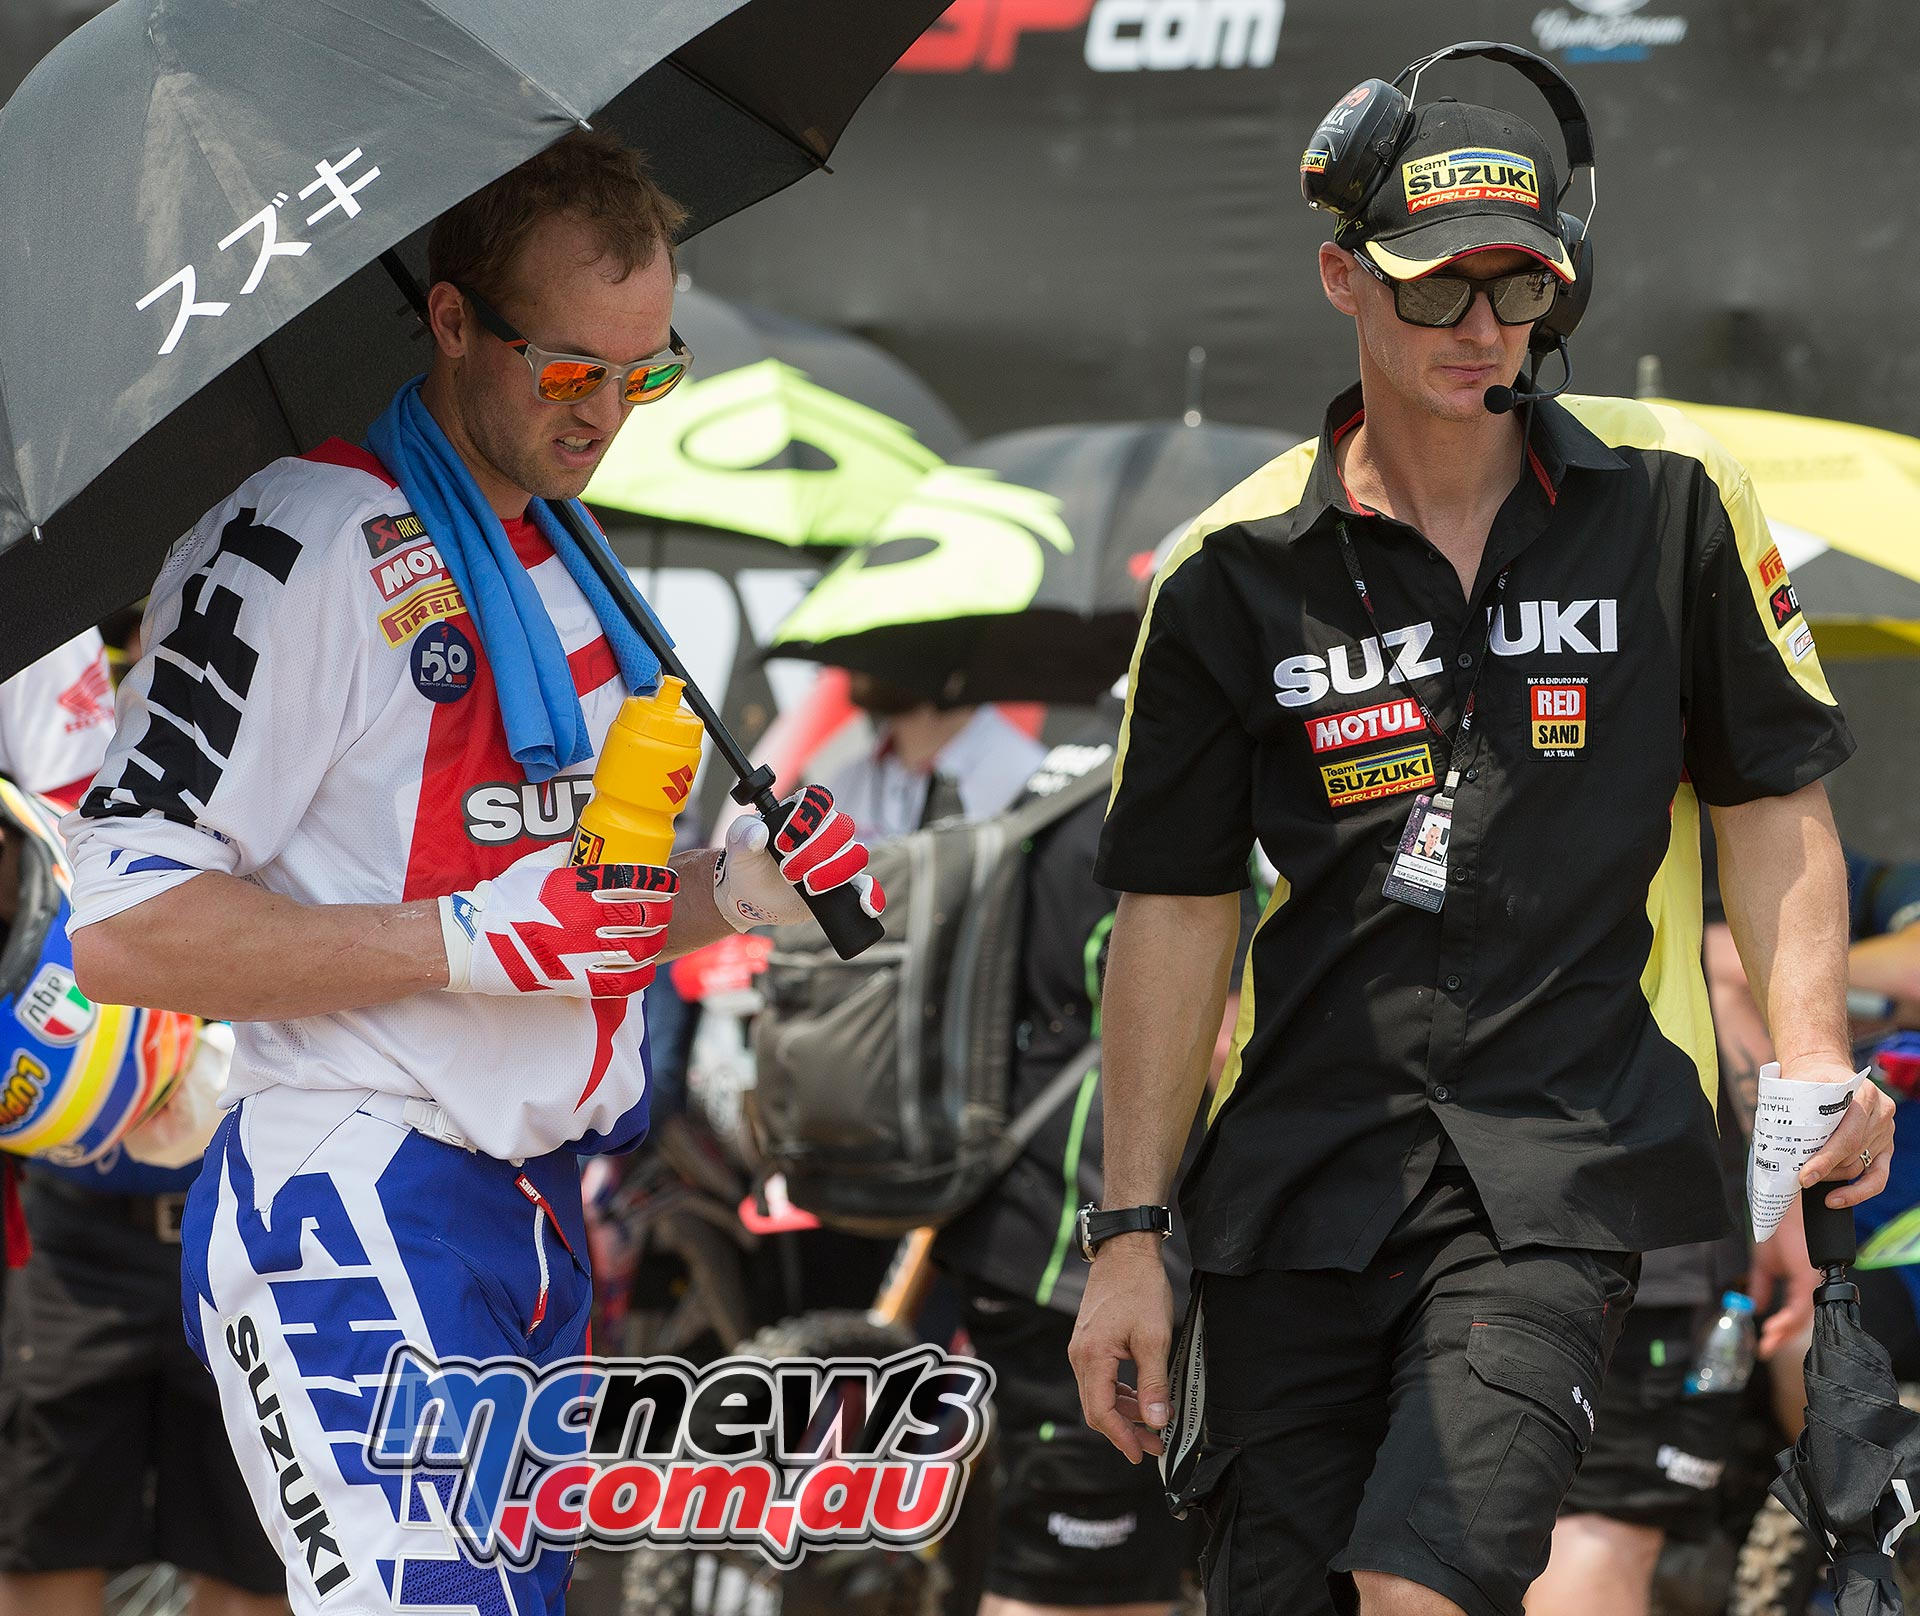 MXGP 2016 - Team Suzuki - Kevin Strijbos and Stefan Everts